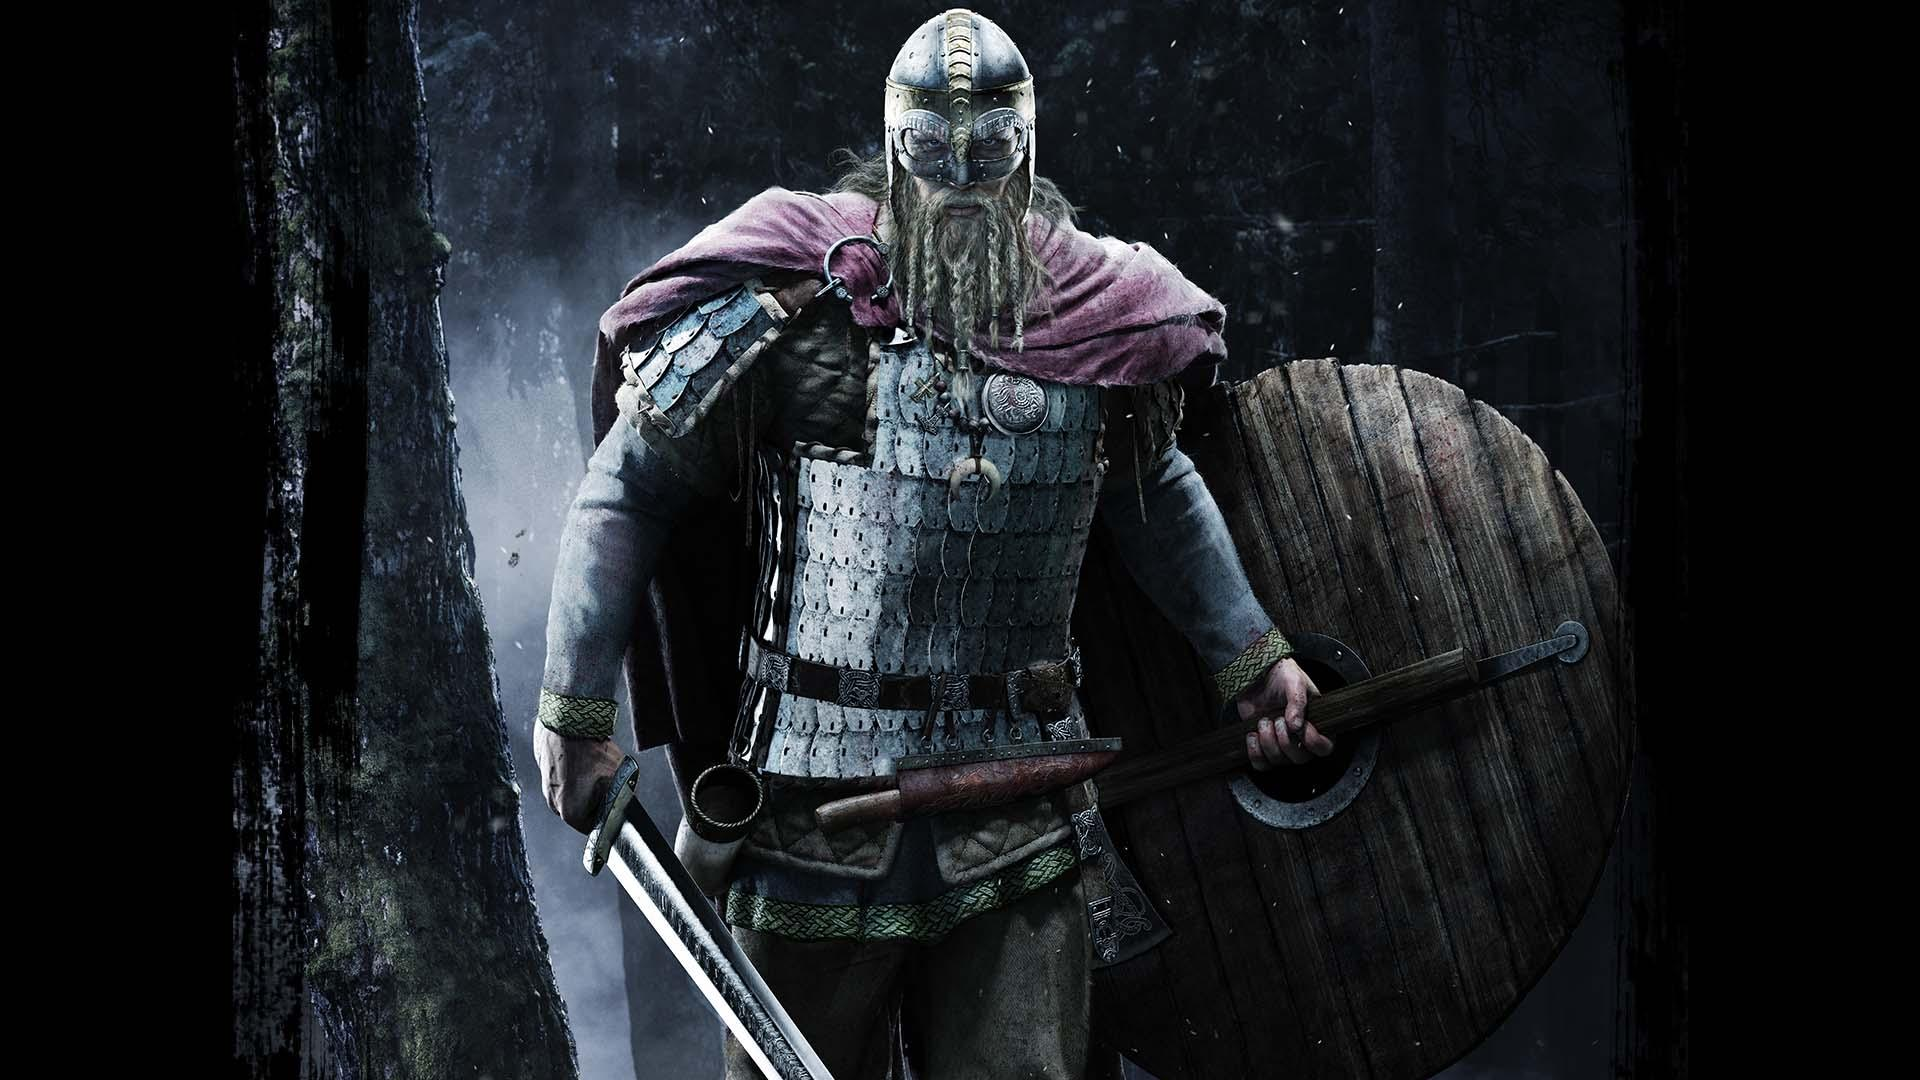 Viking High Quality Background on Wallpapers Vista